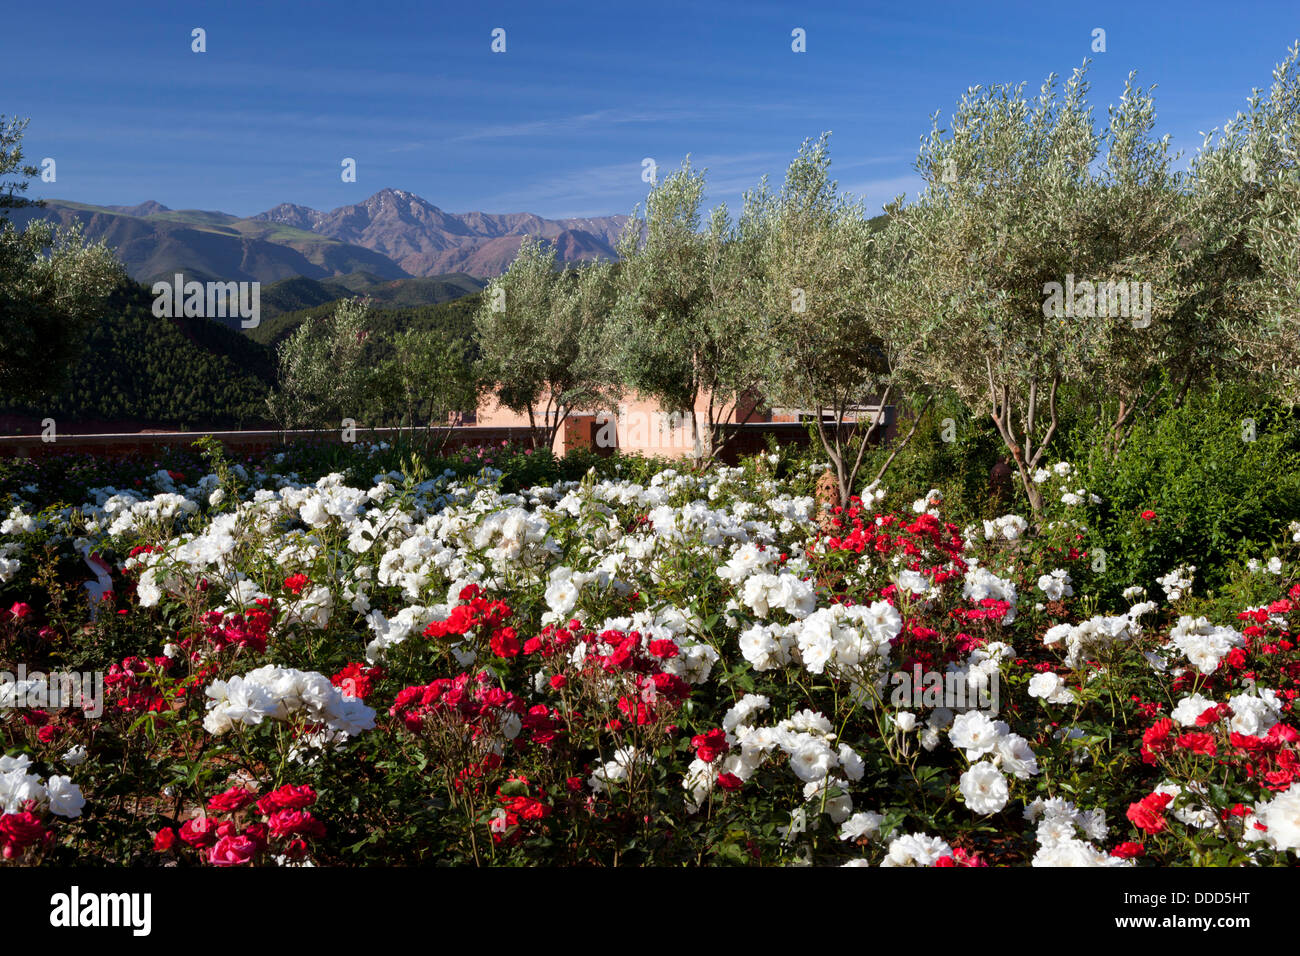 Rose garden at the Kasbah Bab Ourika hotel at the foot of the Atlas mountains - Stock Image